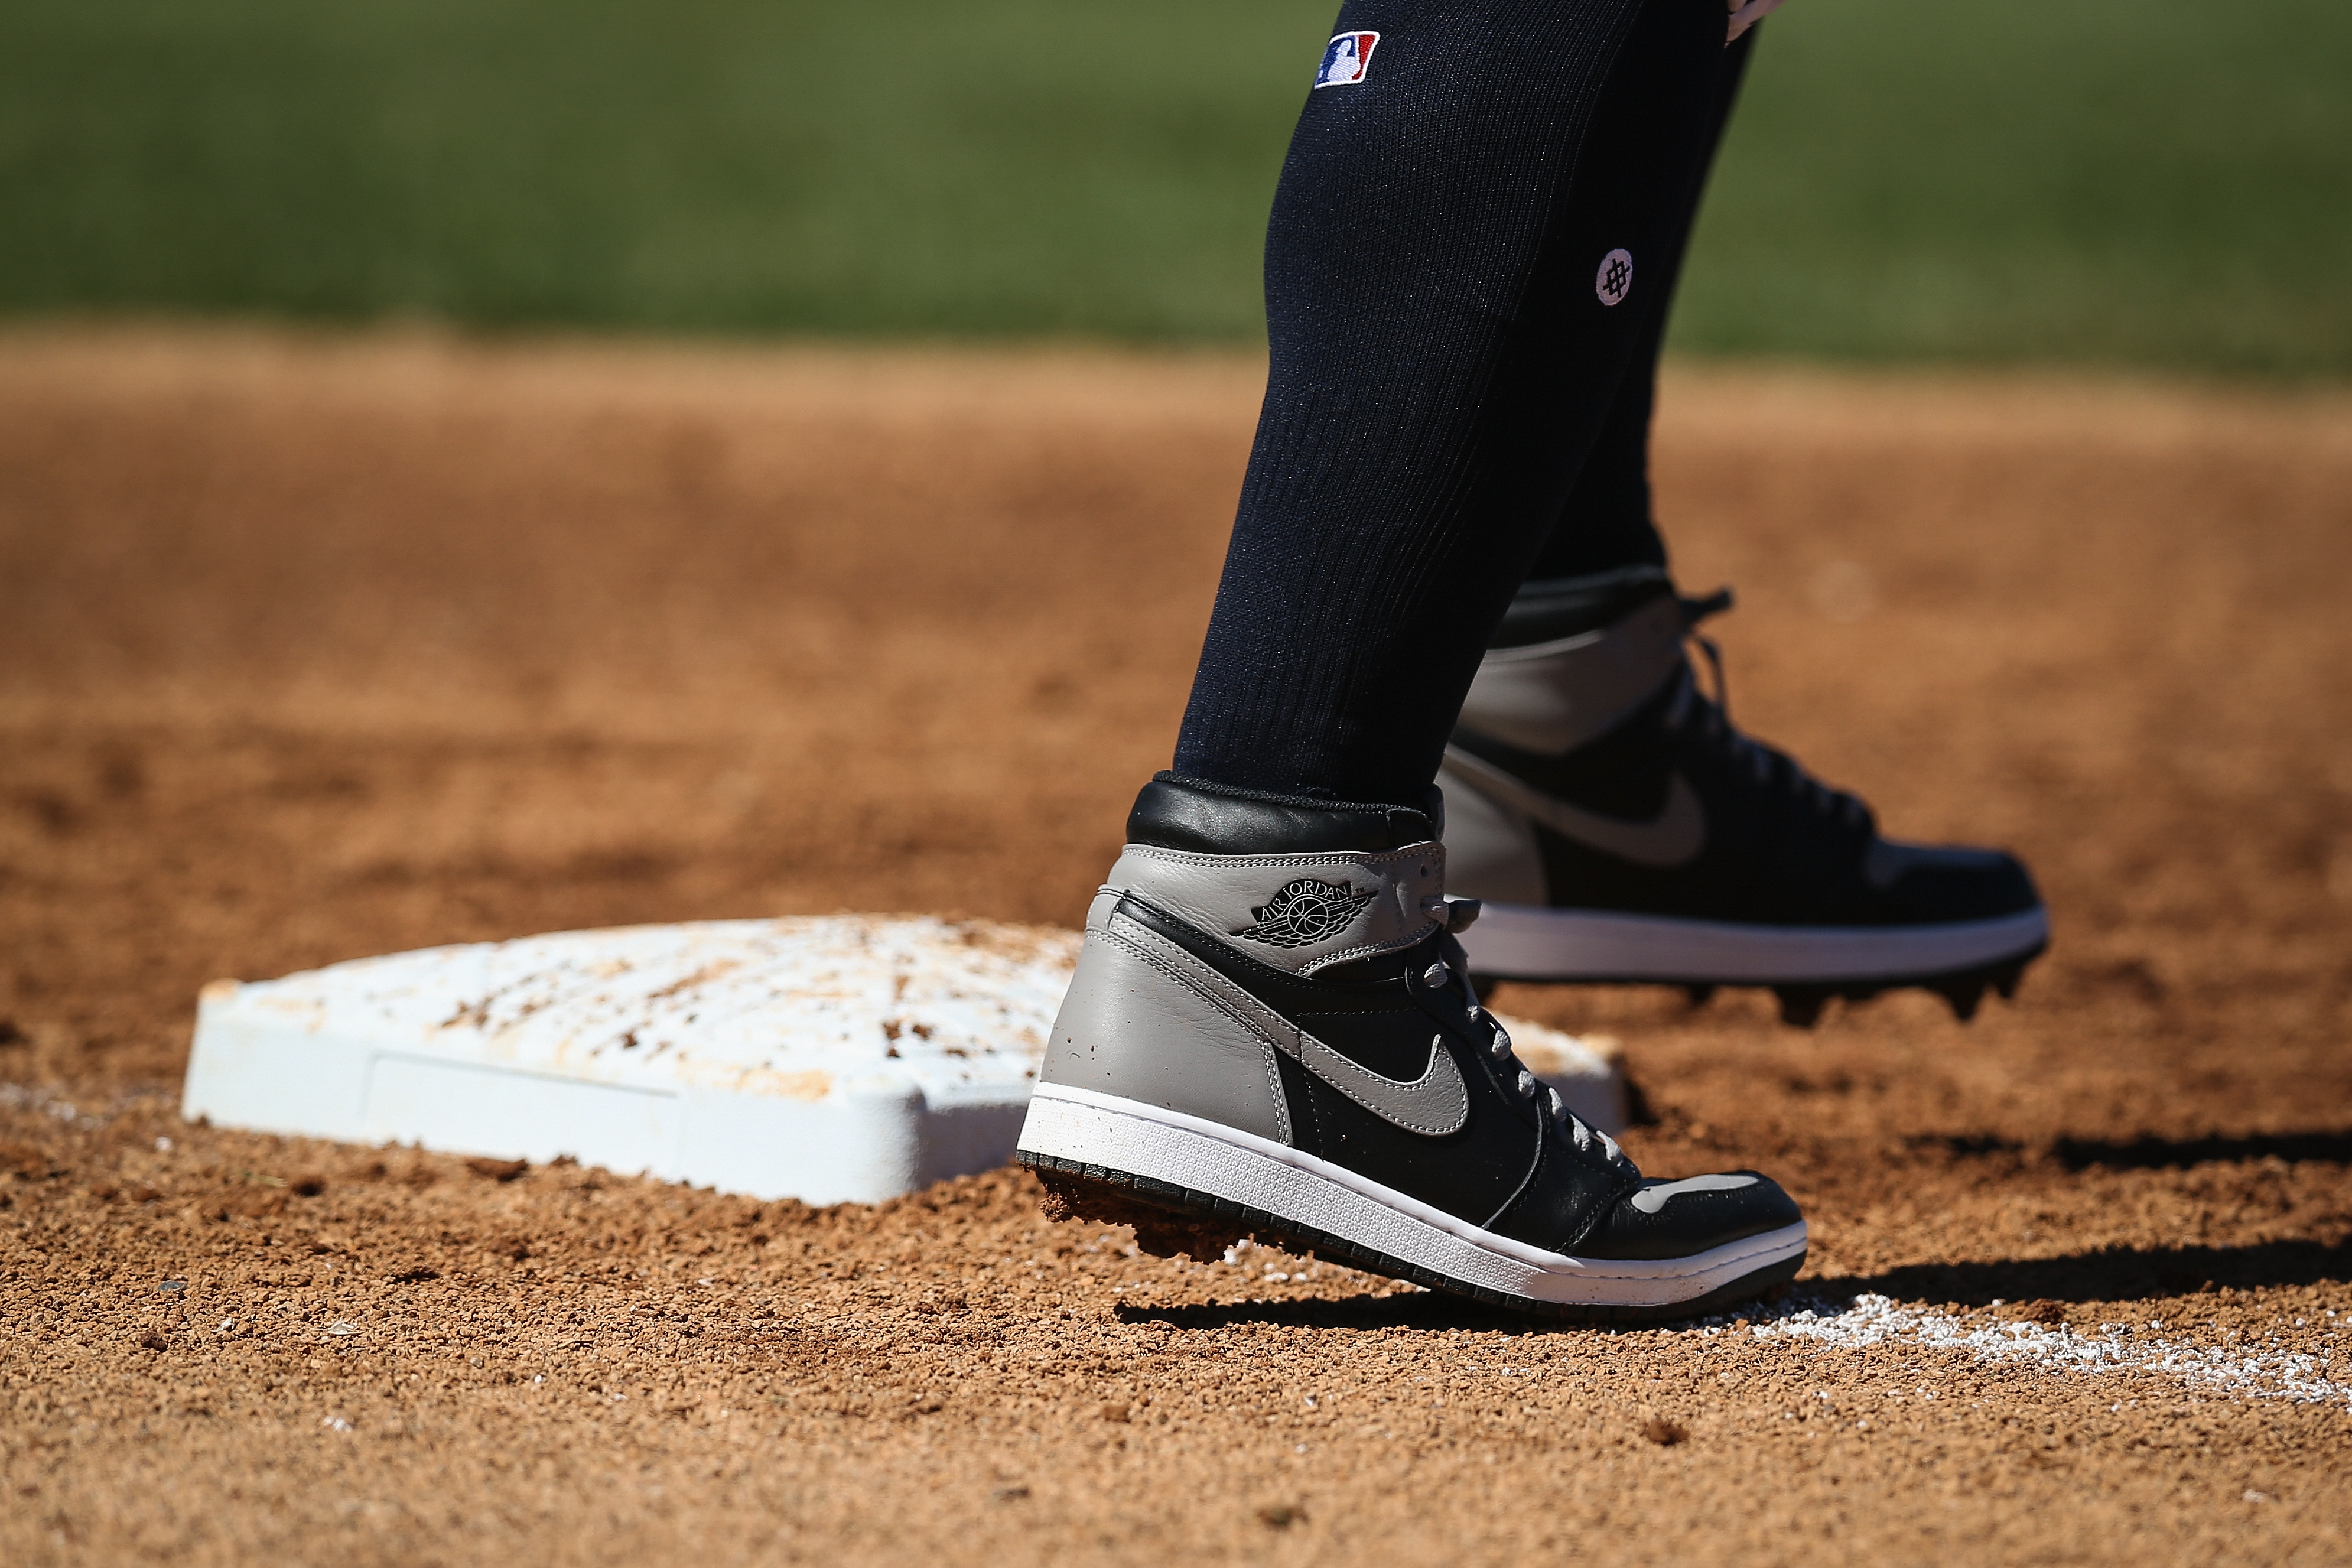 finest selection 3b1a7 e6d9f How Yankees outfielder Clint Frazier became MLB's king of ...